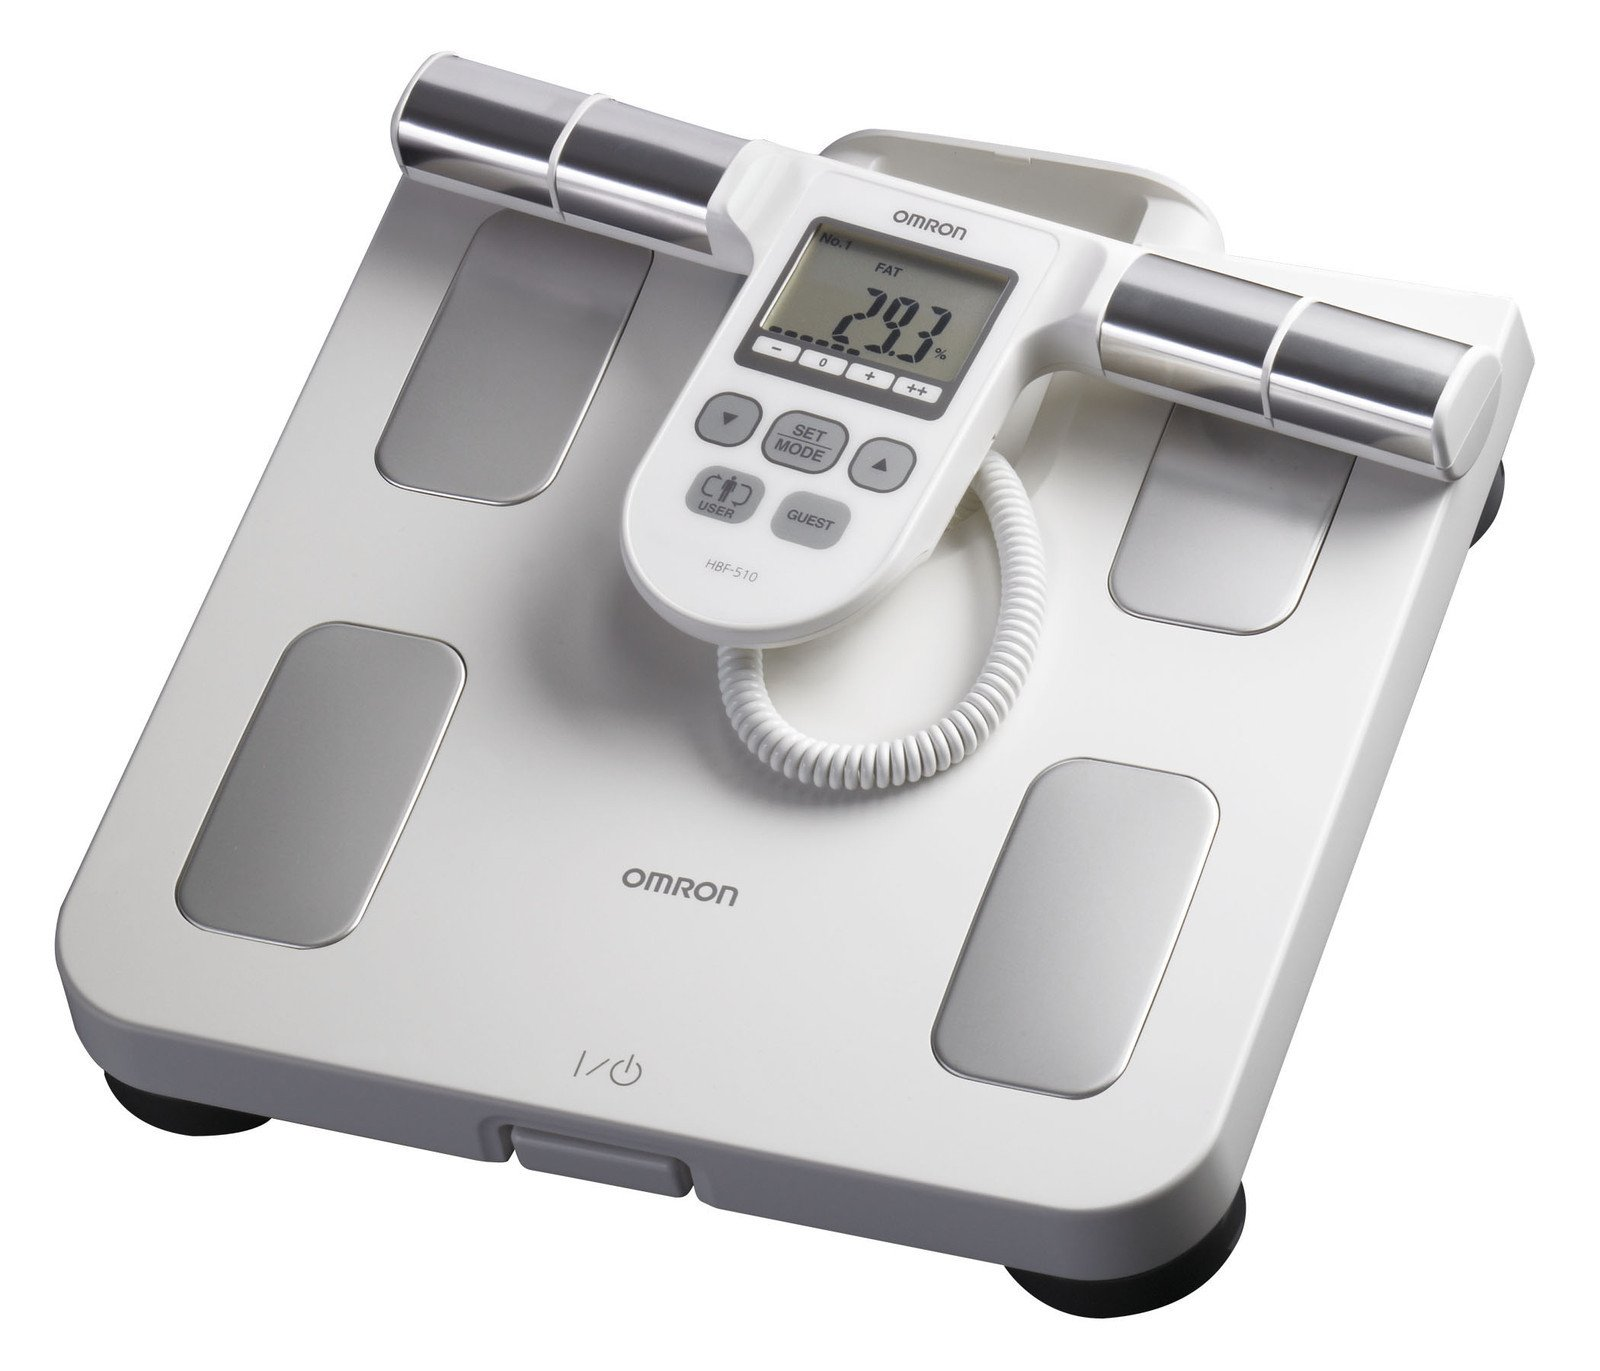 NEW Omron Hbf-510w Body Composition Monitor with Scale Fast Shipping Ship Worldwide